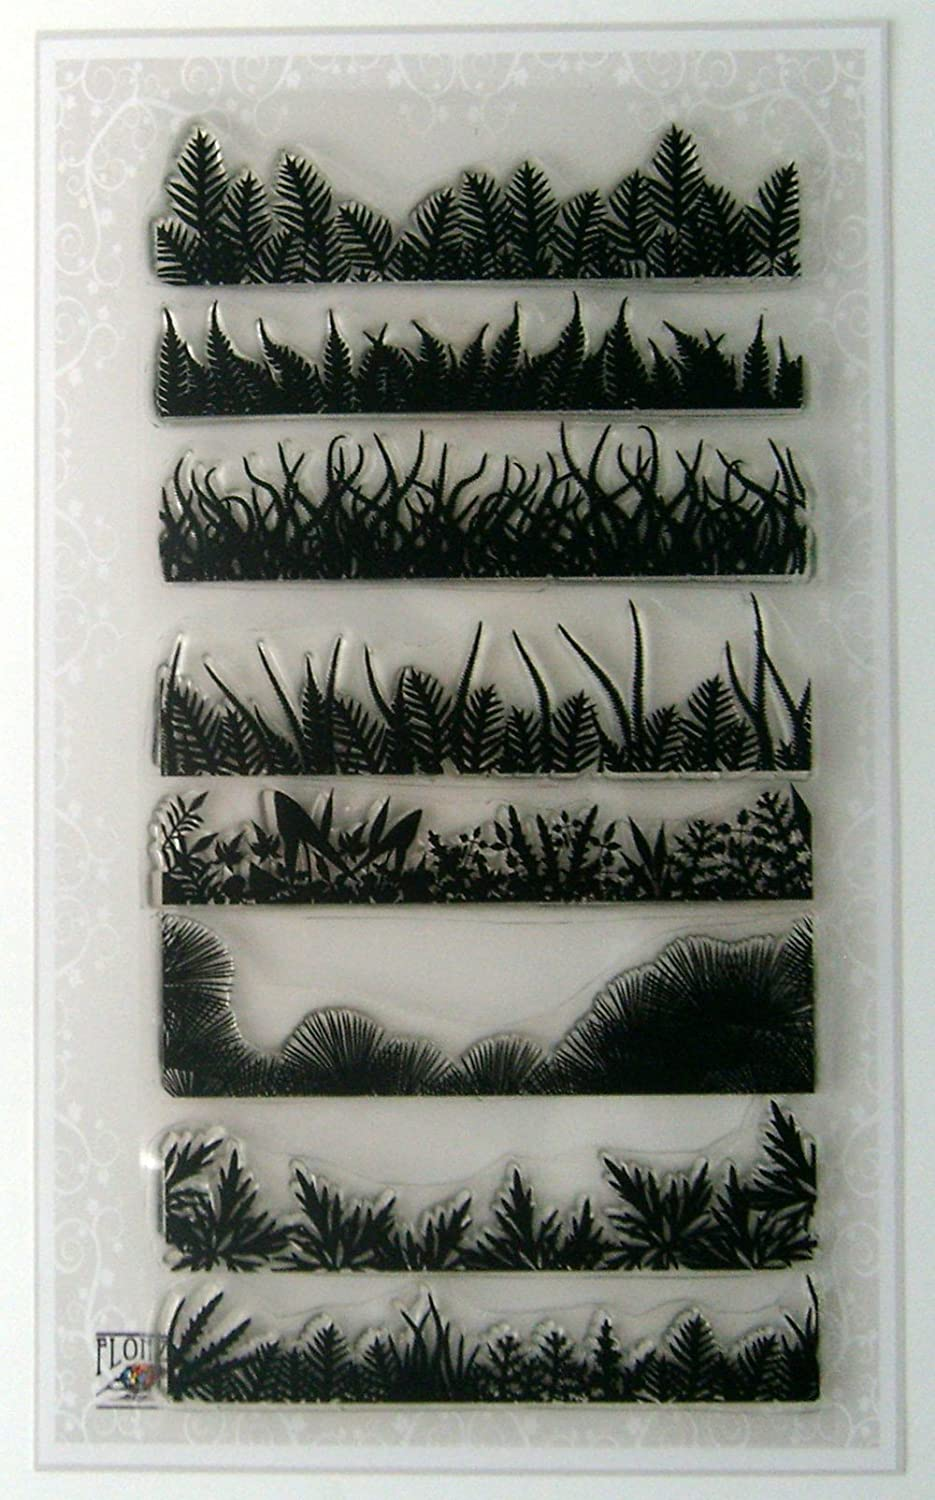 Grass and Fern Low price Borders Set Clear Stamps